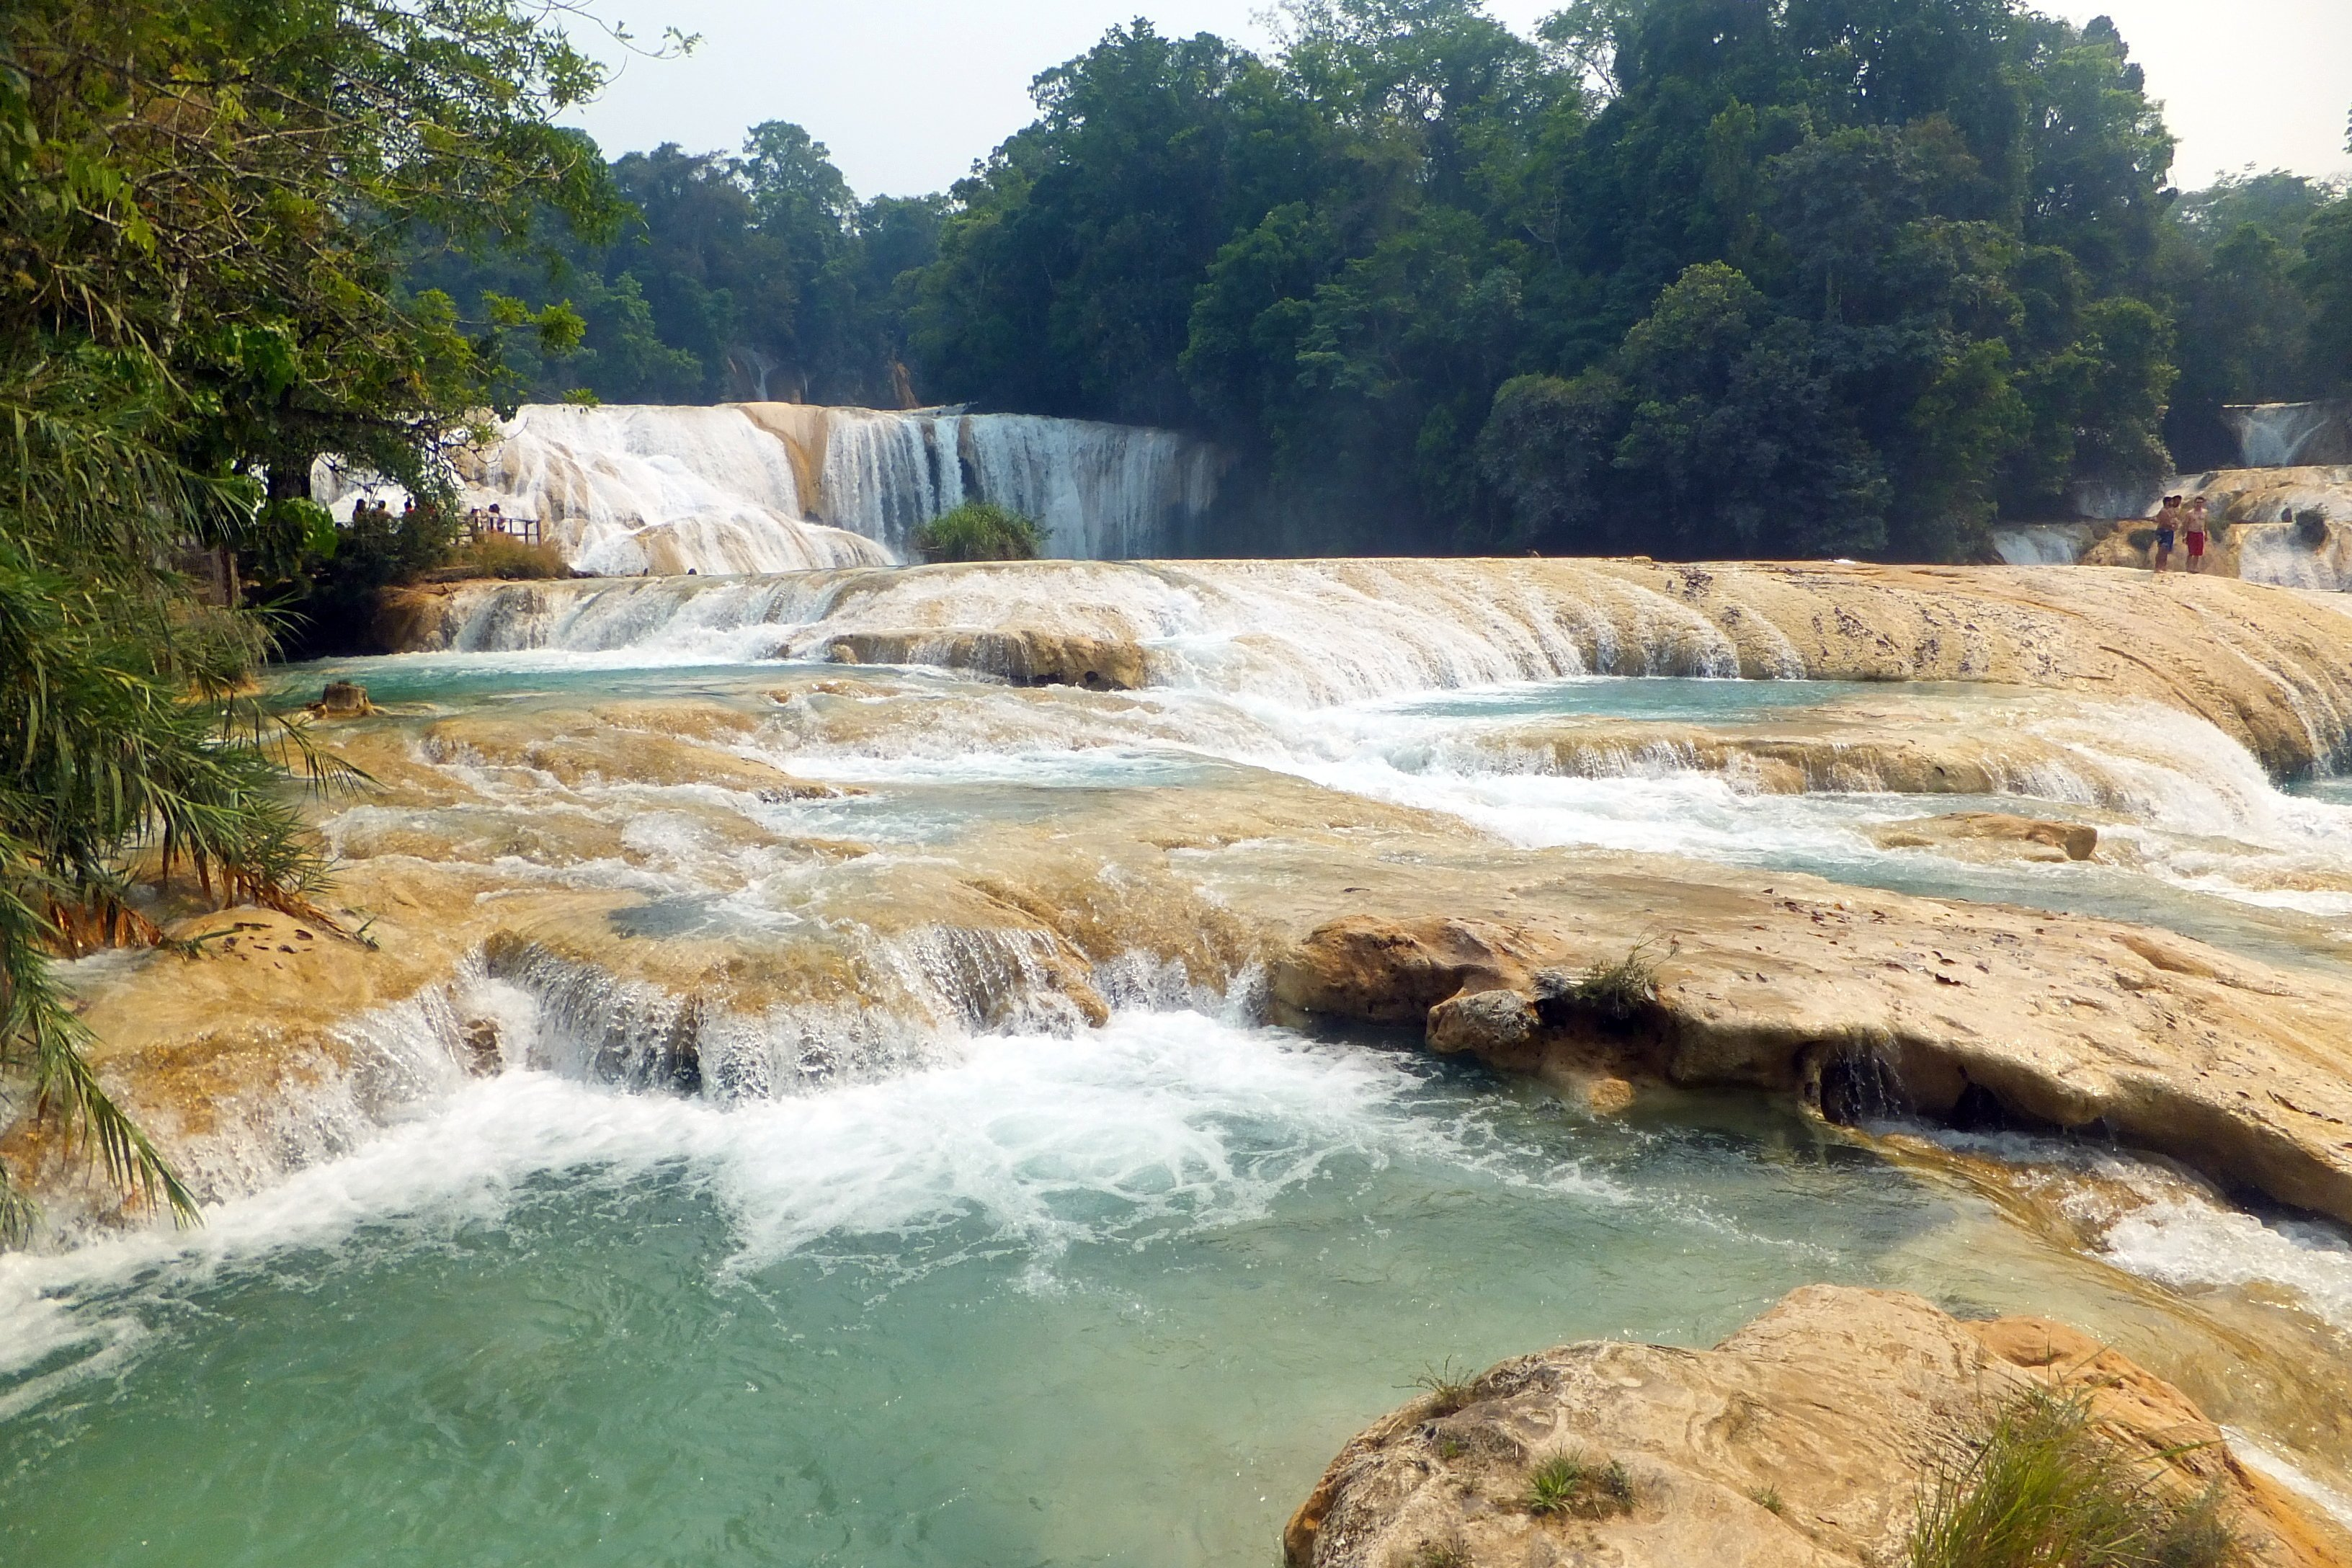 The waterfalls of Agua Azul - A photo blog of Mexico